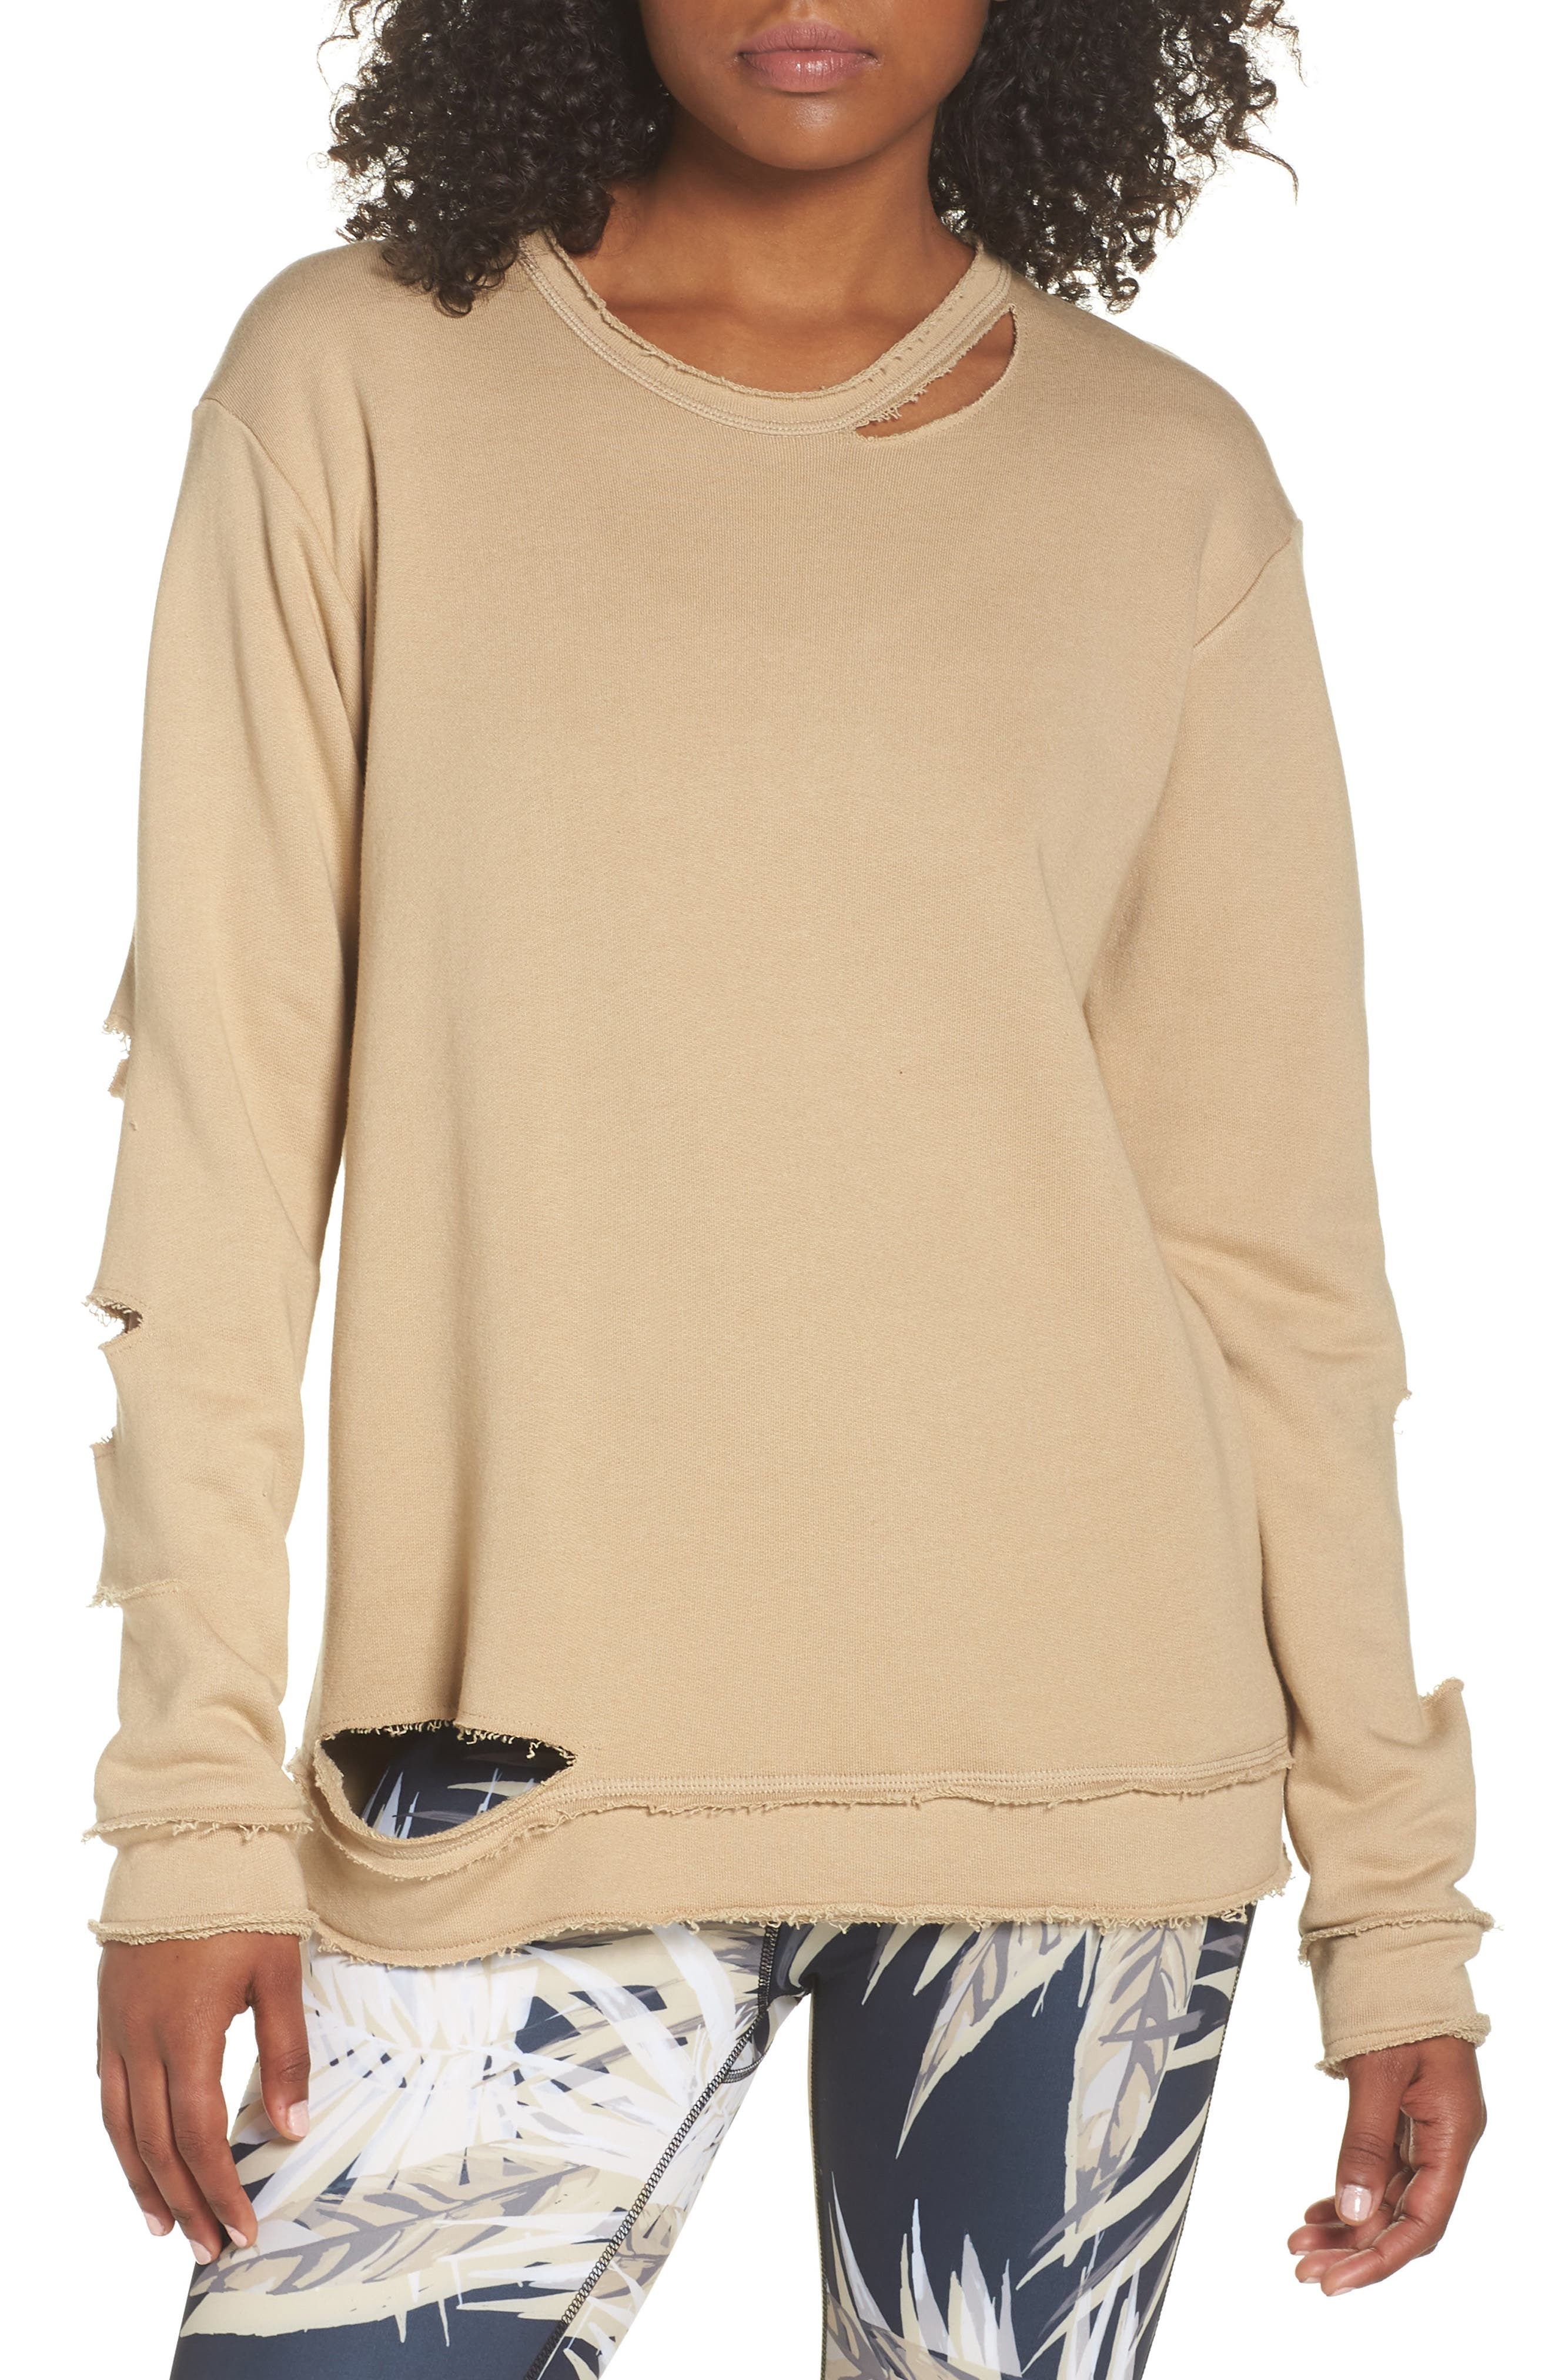 Cypher Destroyed Sweatshirt,                             Main thumbnail 1, color,                             Slate